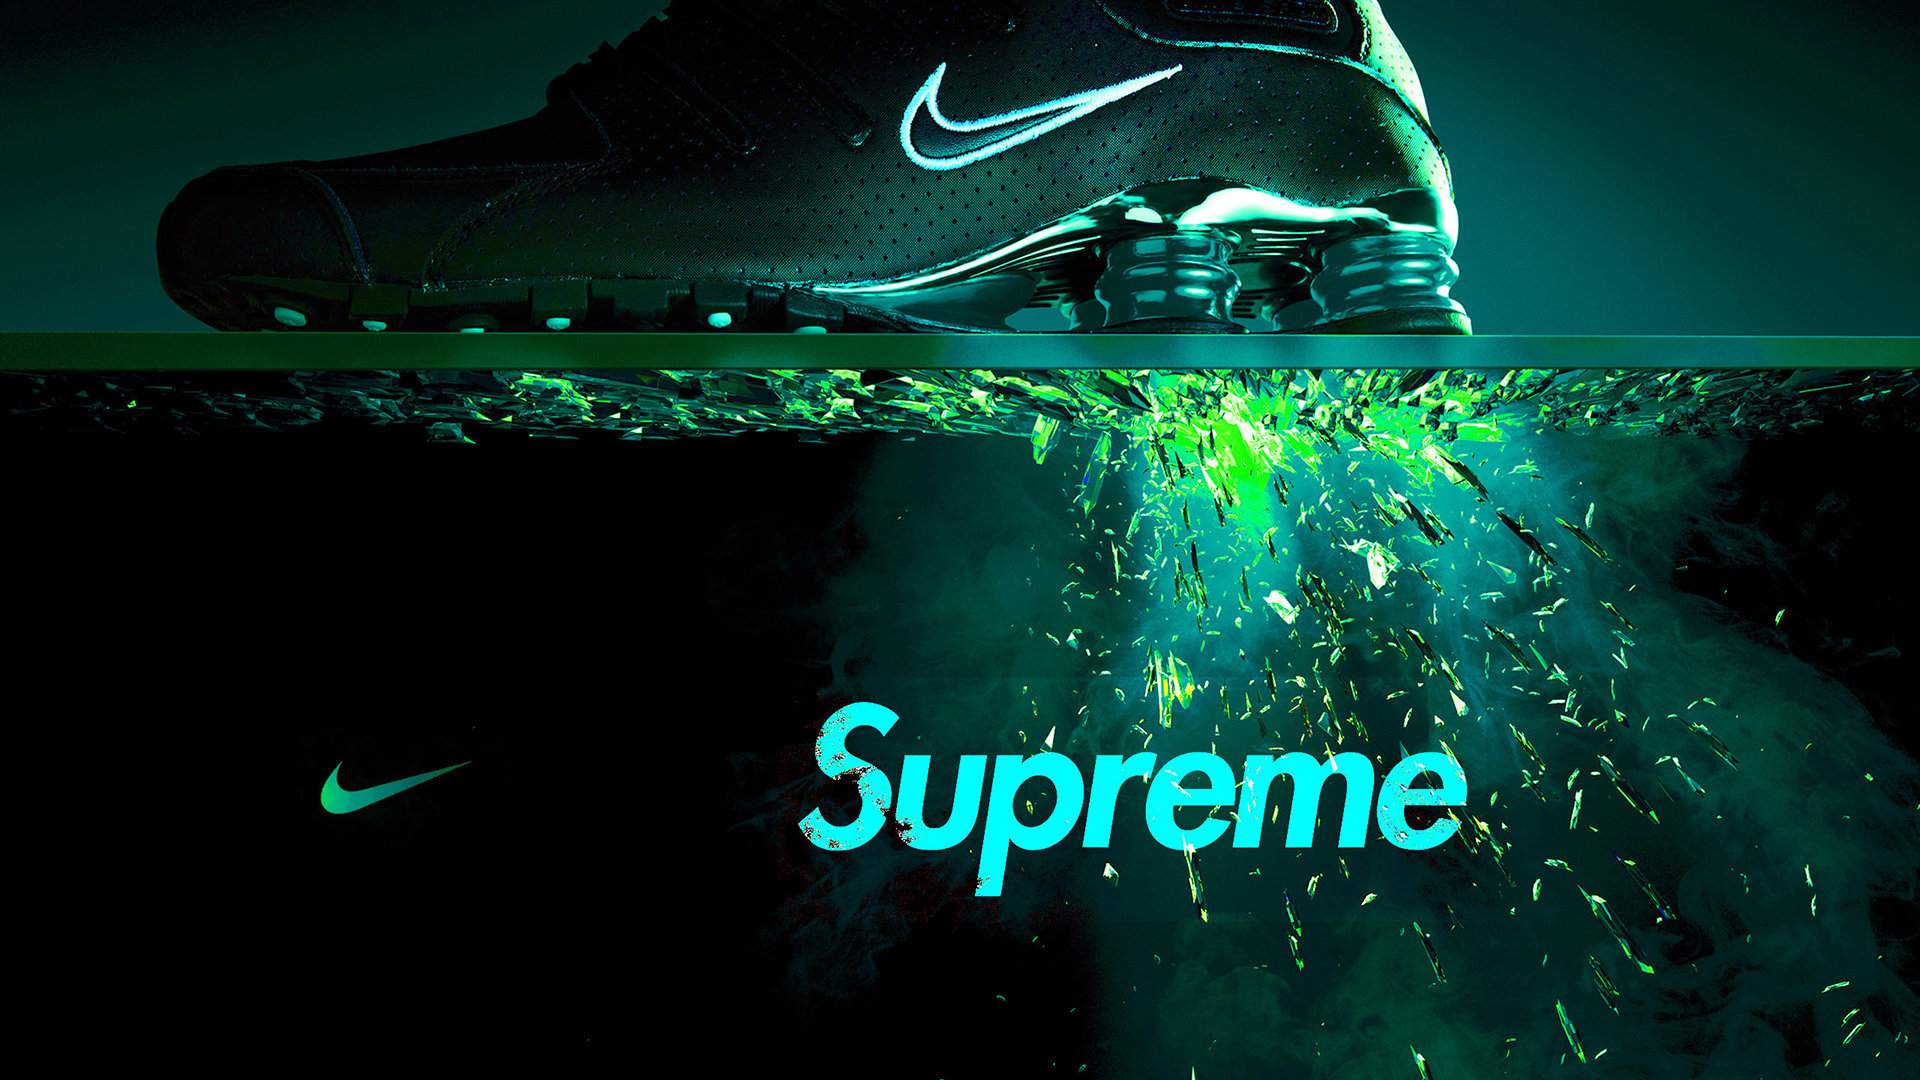 Nike supreme wallpaper - Hd supreme iphone wallpaper ...